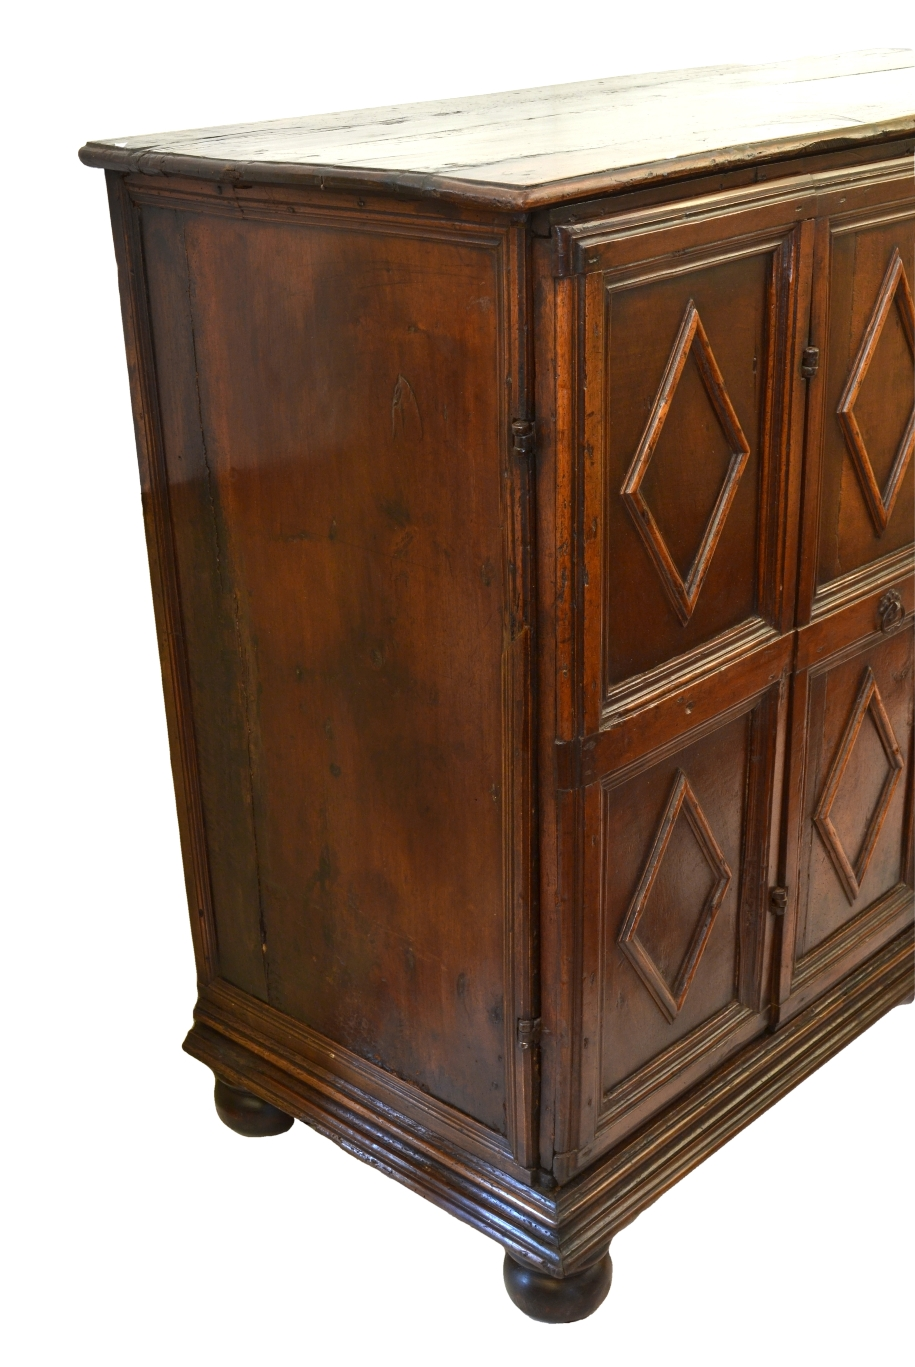 View 4: Italian Walnut Credenza, 18th c.